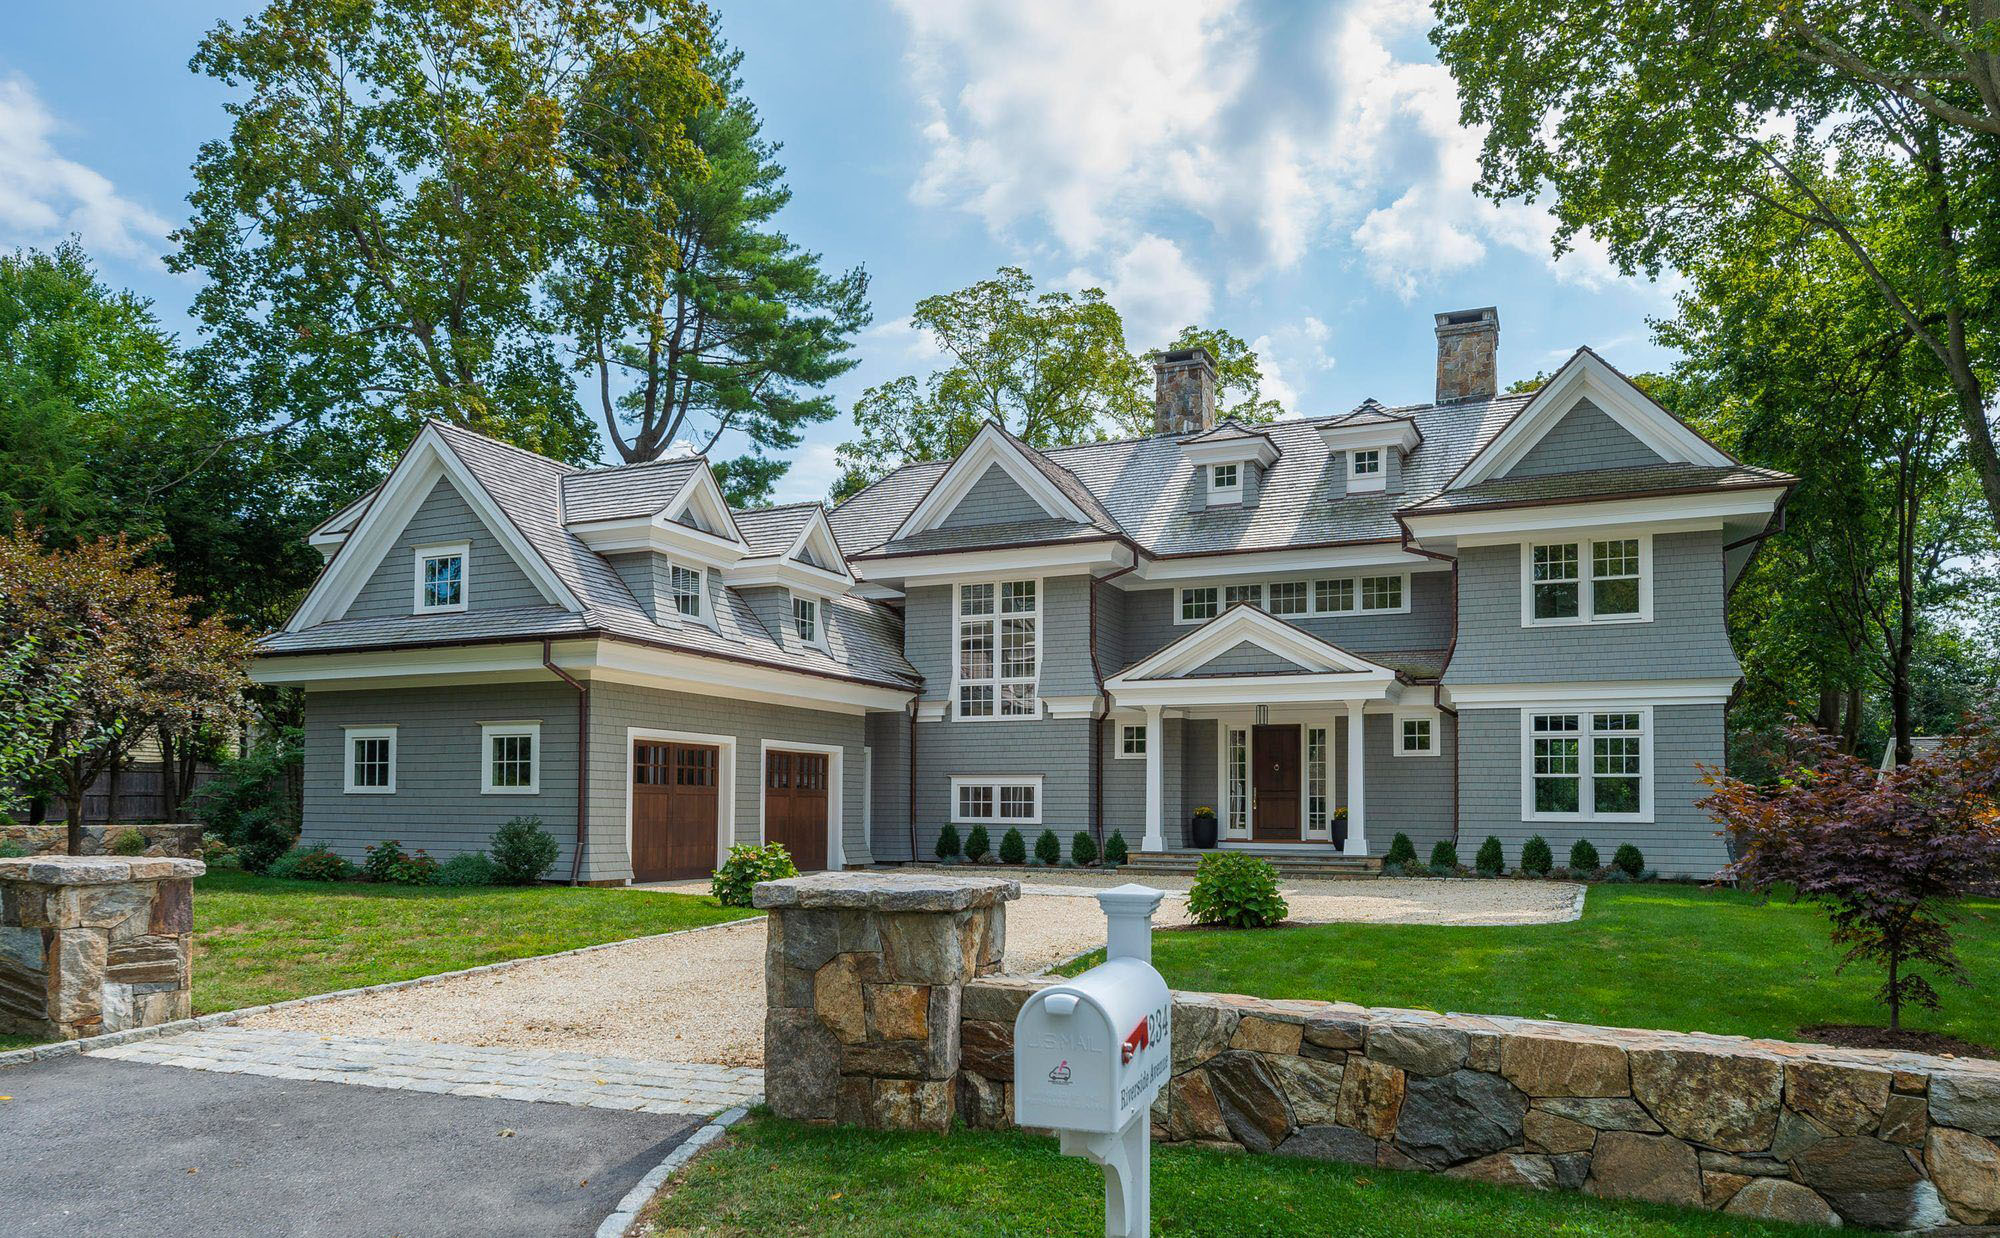 Beautiful shingle style new home featuring grey siding, stained wood doors and white trim.